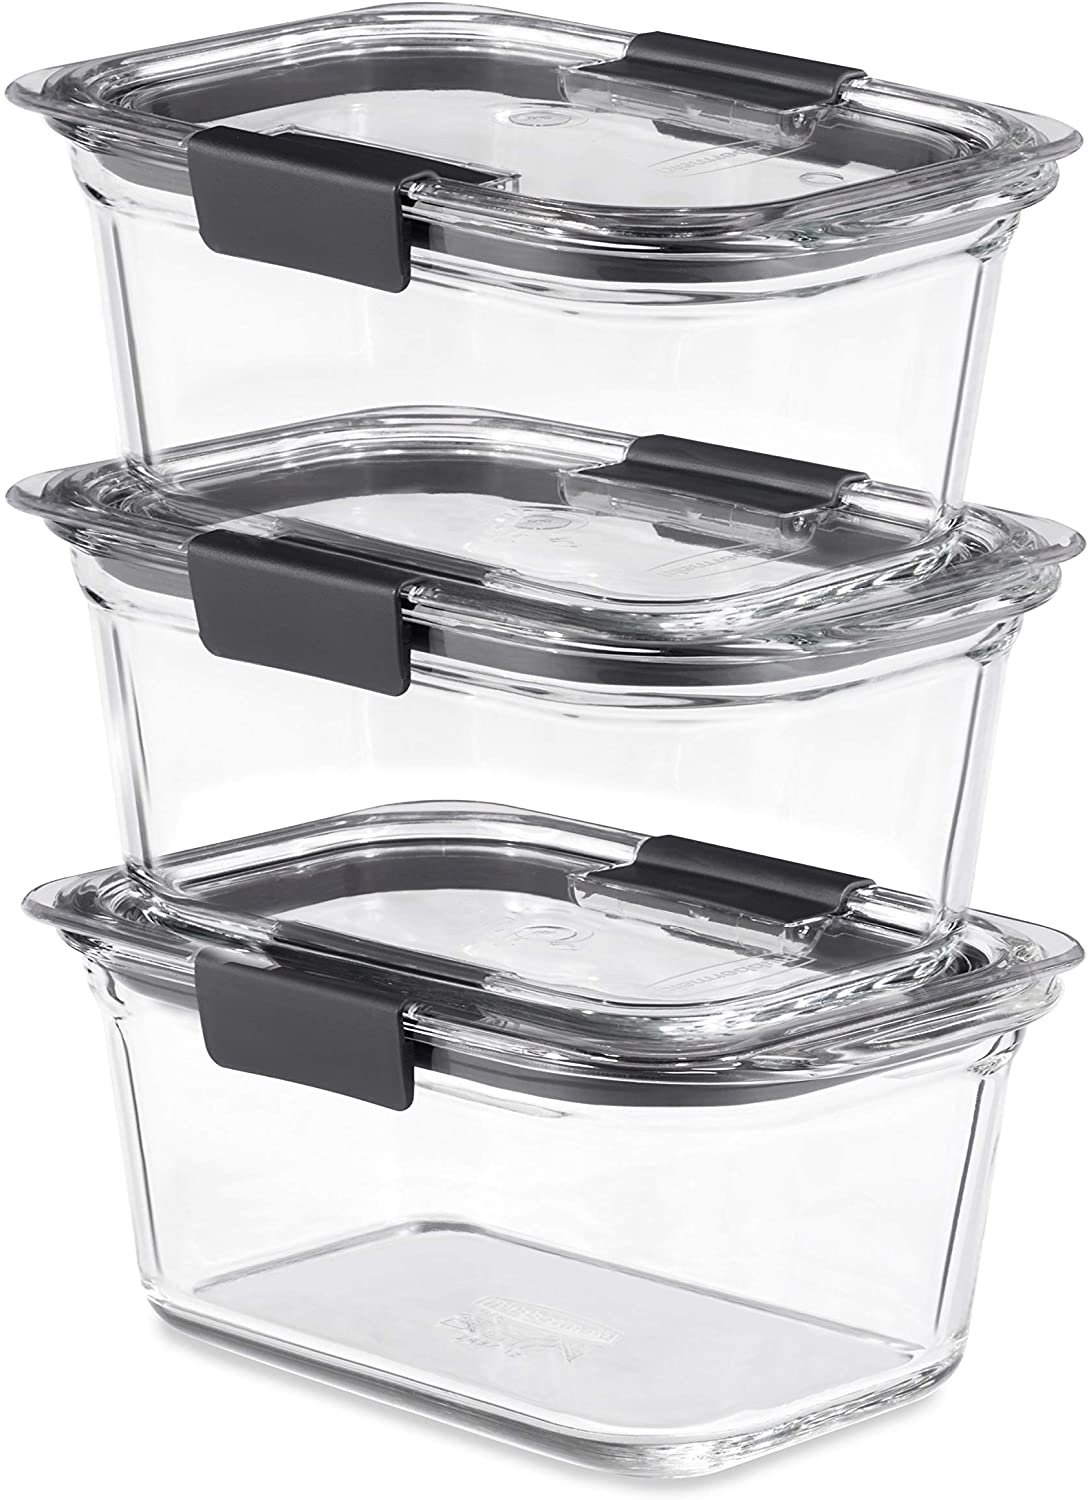 Rubbermaid Brilliance Glass Storage 4.7-Cup Food Containers with Lids, 3-Pack (6 Pieces Total), BPA Free and Leak Proof, Medium, Clear